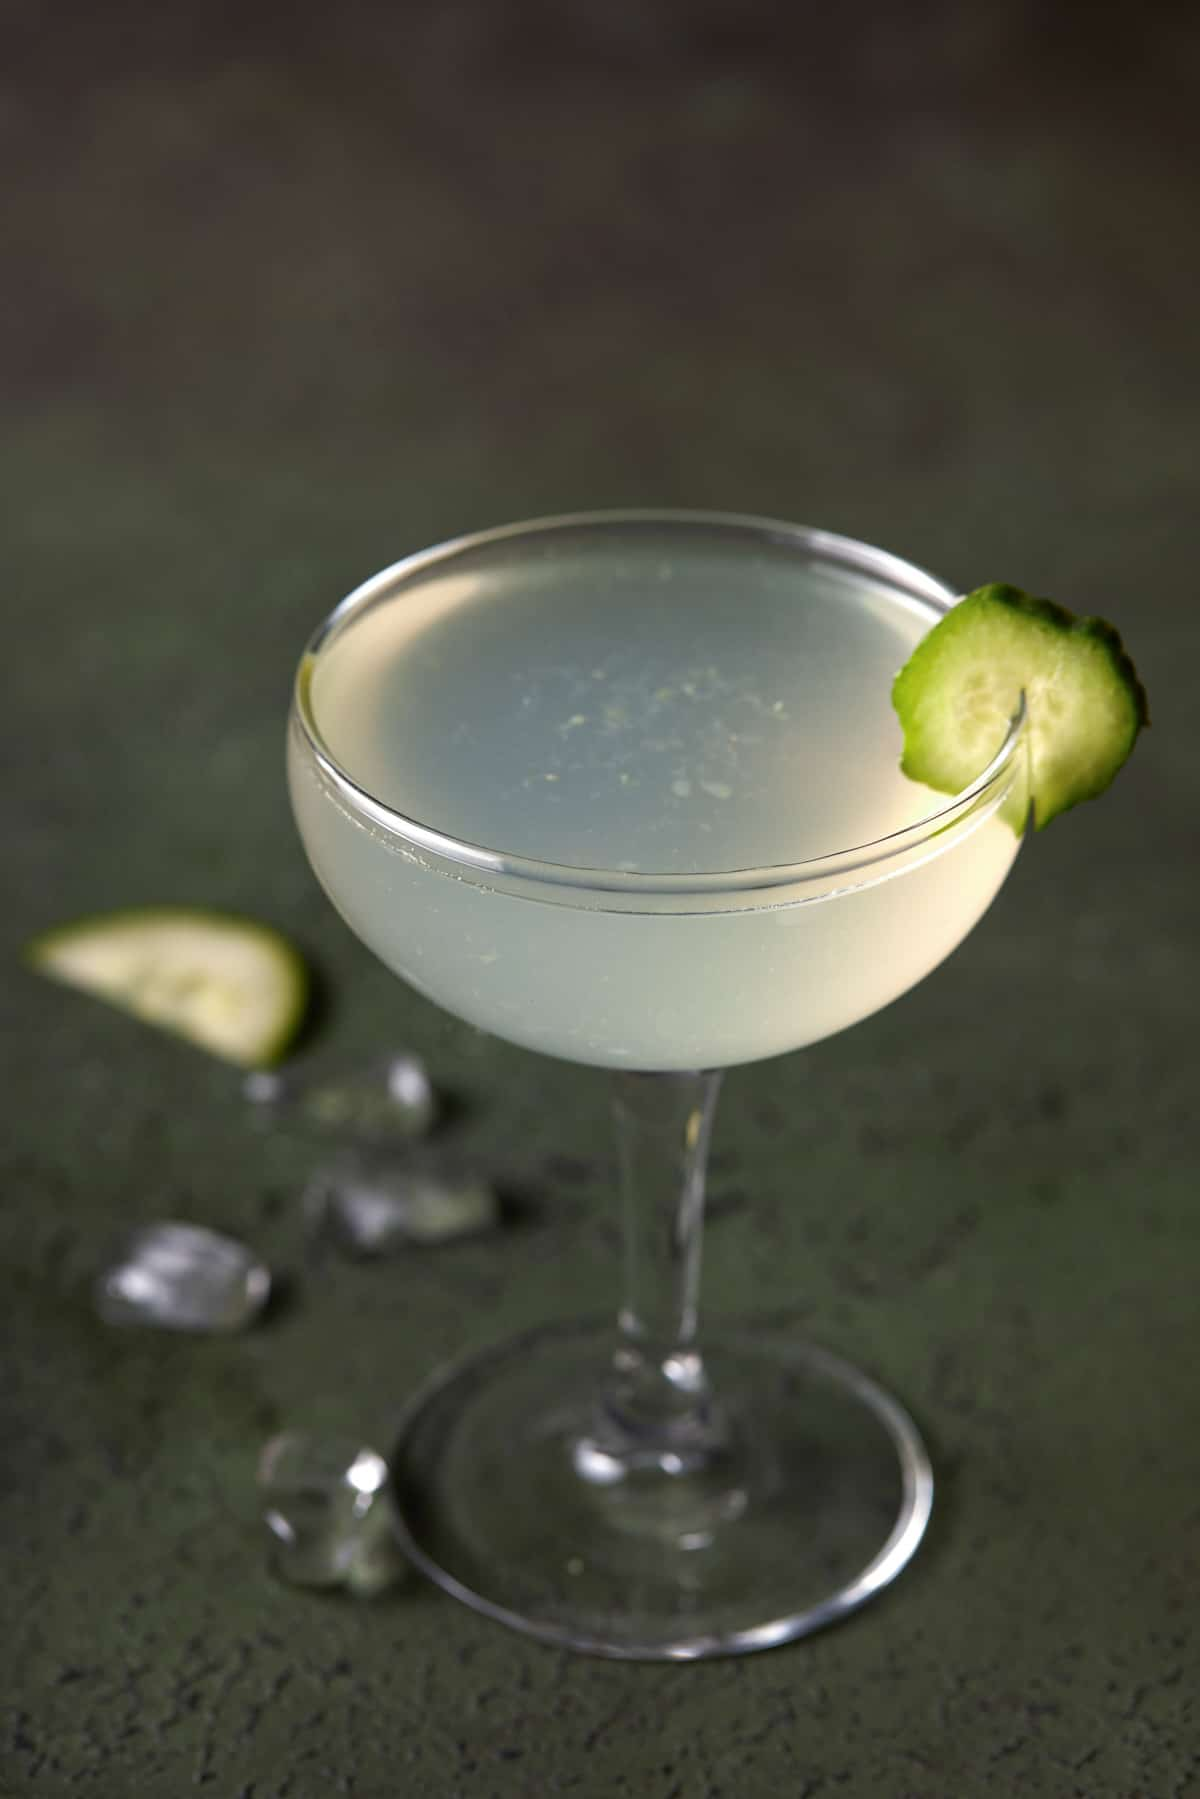 Vodka gimlet in a coupe glass garnished with cucumber on a dark green board.